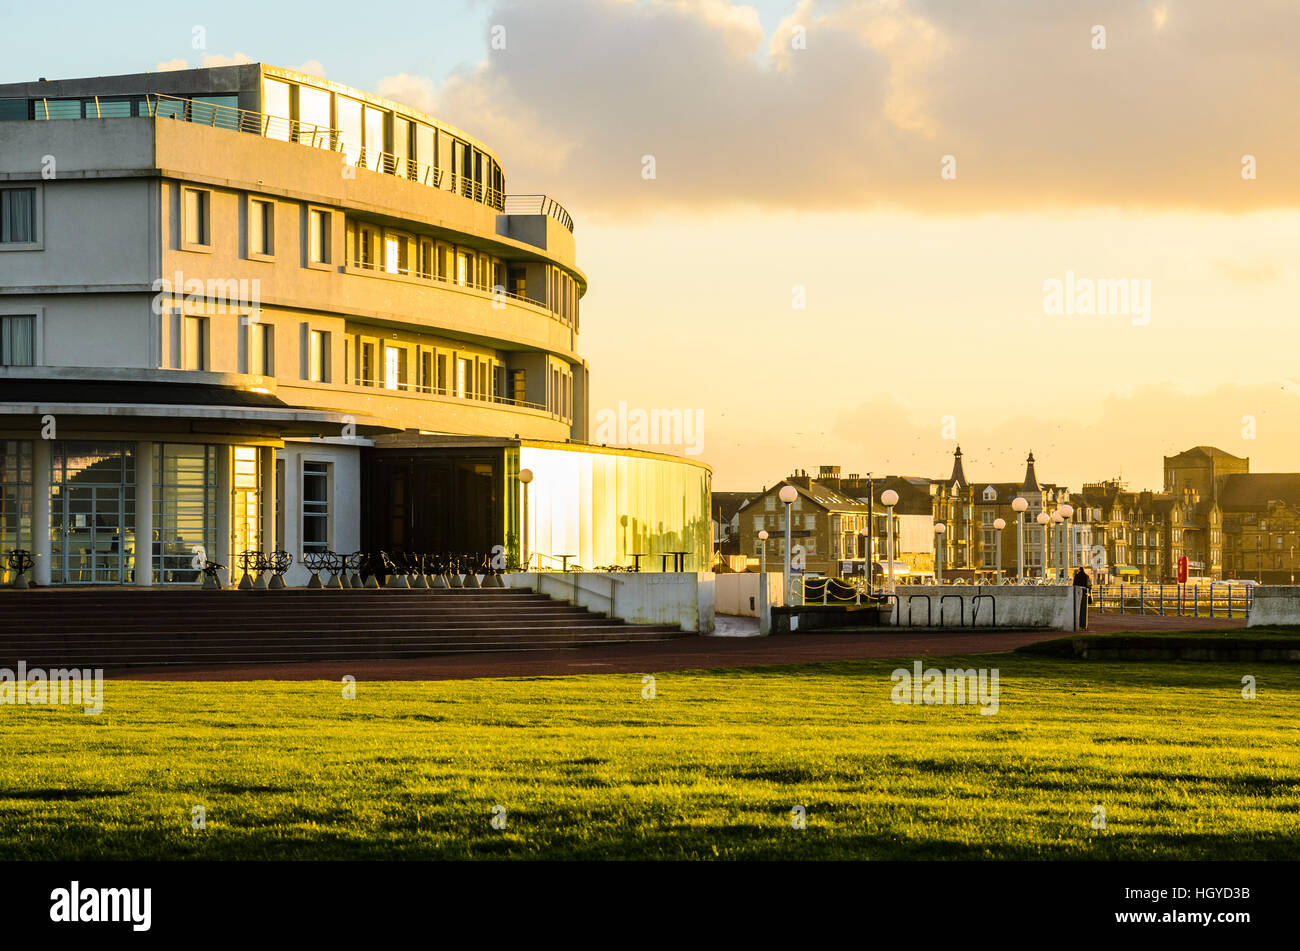 The Midland Hotel in Morecambe Lancashire England an Art Deco masterpiece first opened in 1933 and restored in 2008 - Stock Image